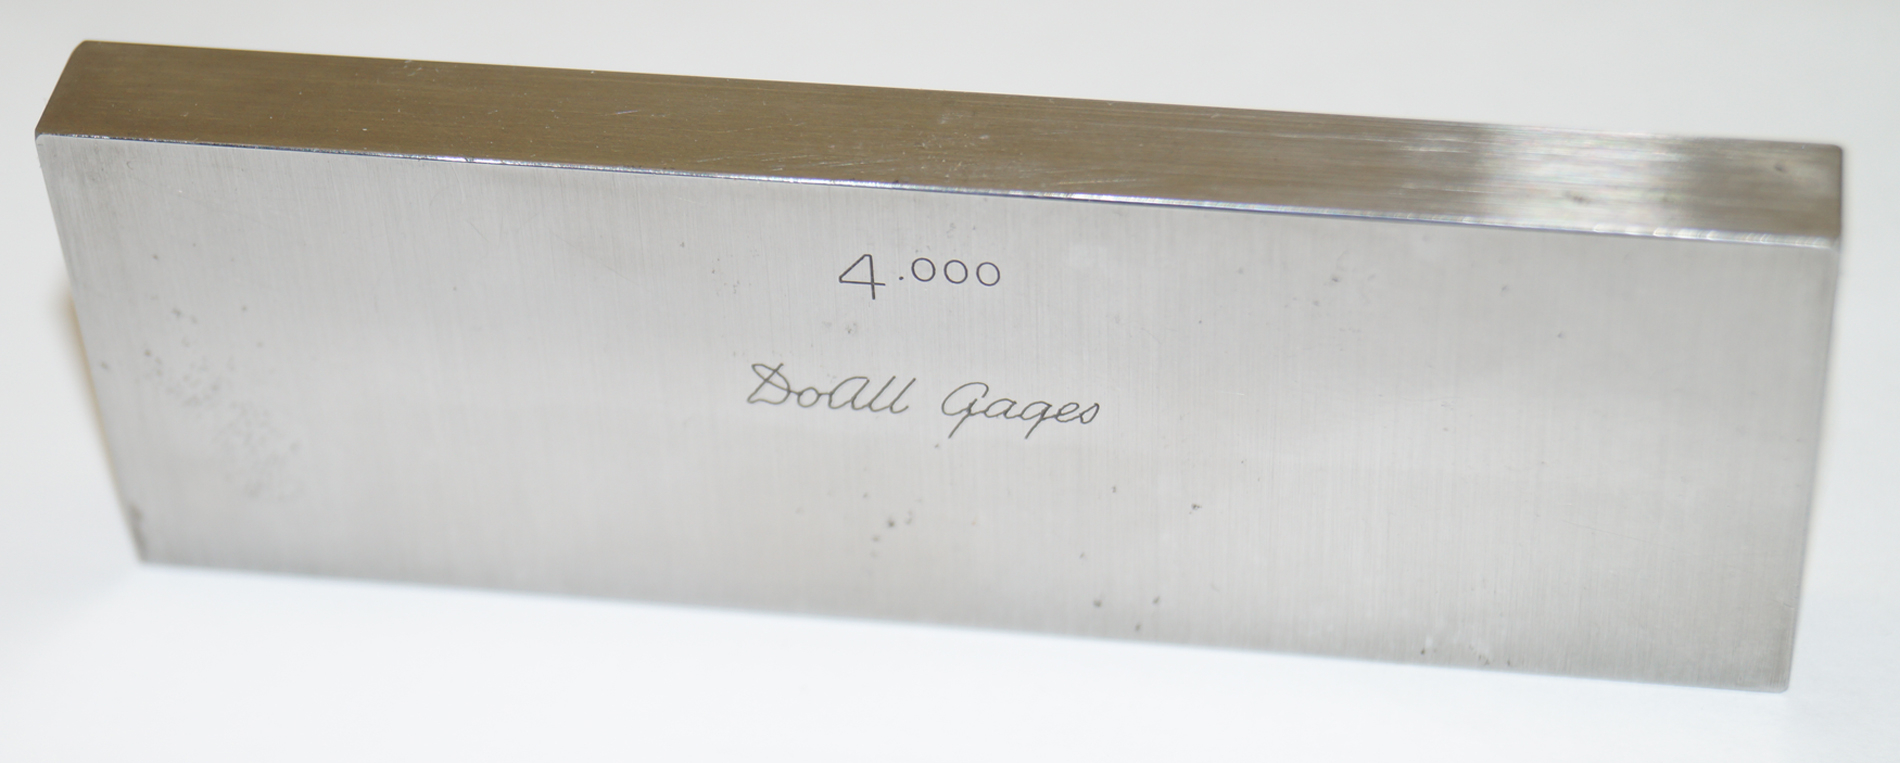 "DoALL 4.000"" Gage Block - Steel Rectangular Gauge"